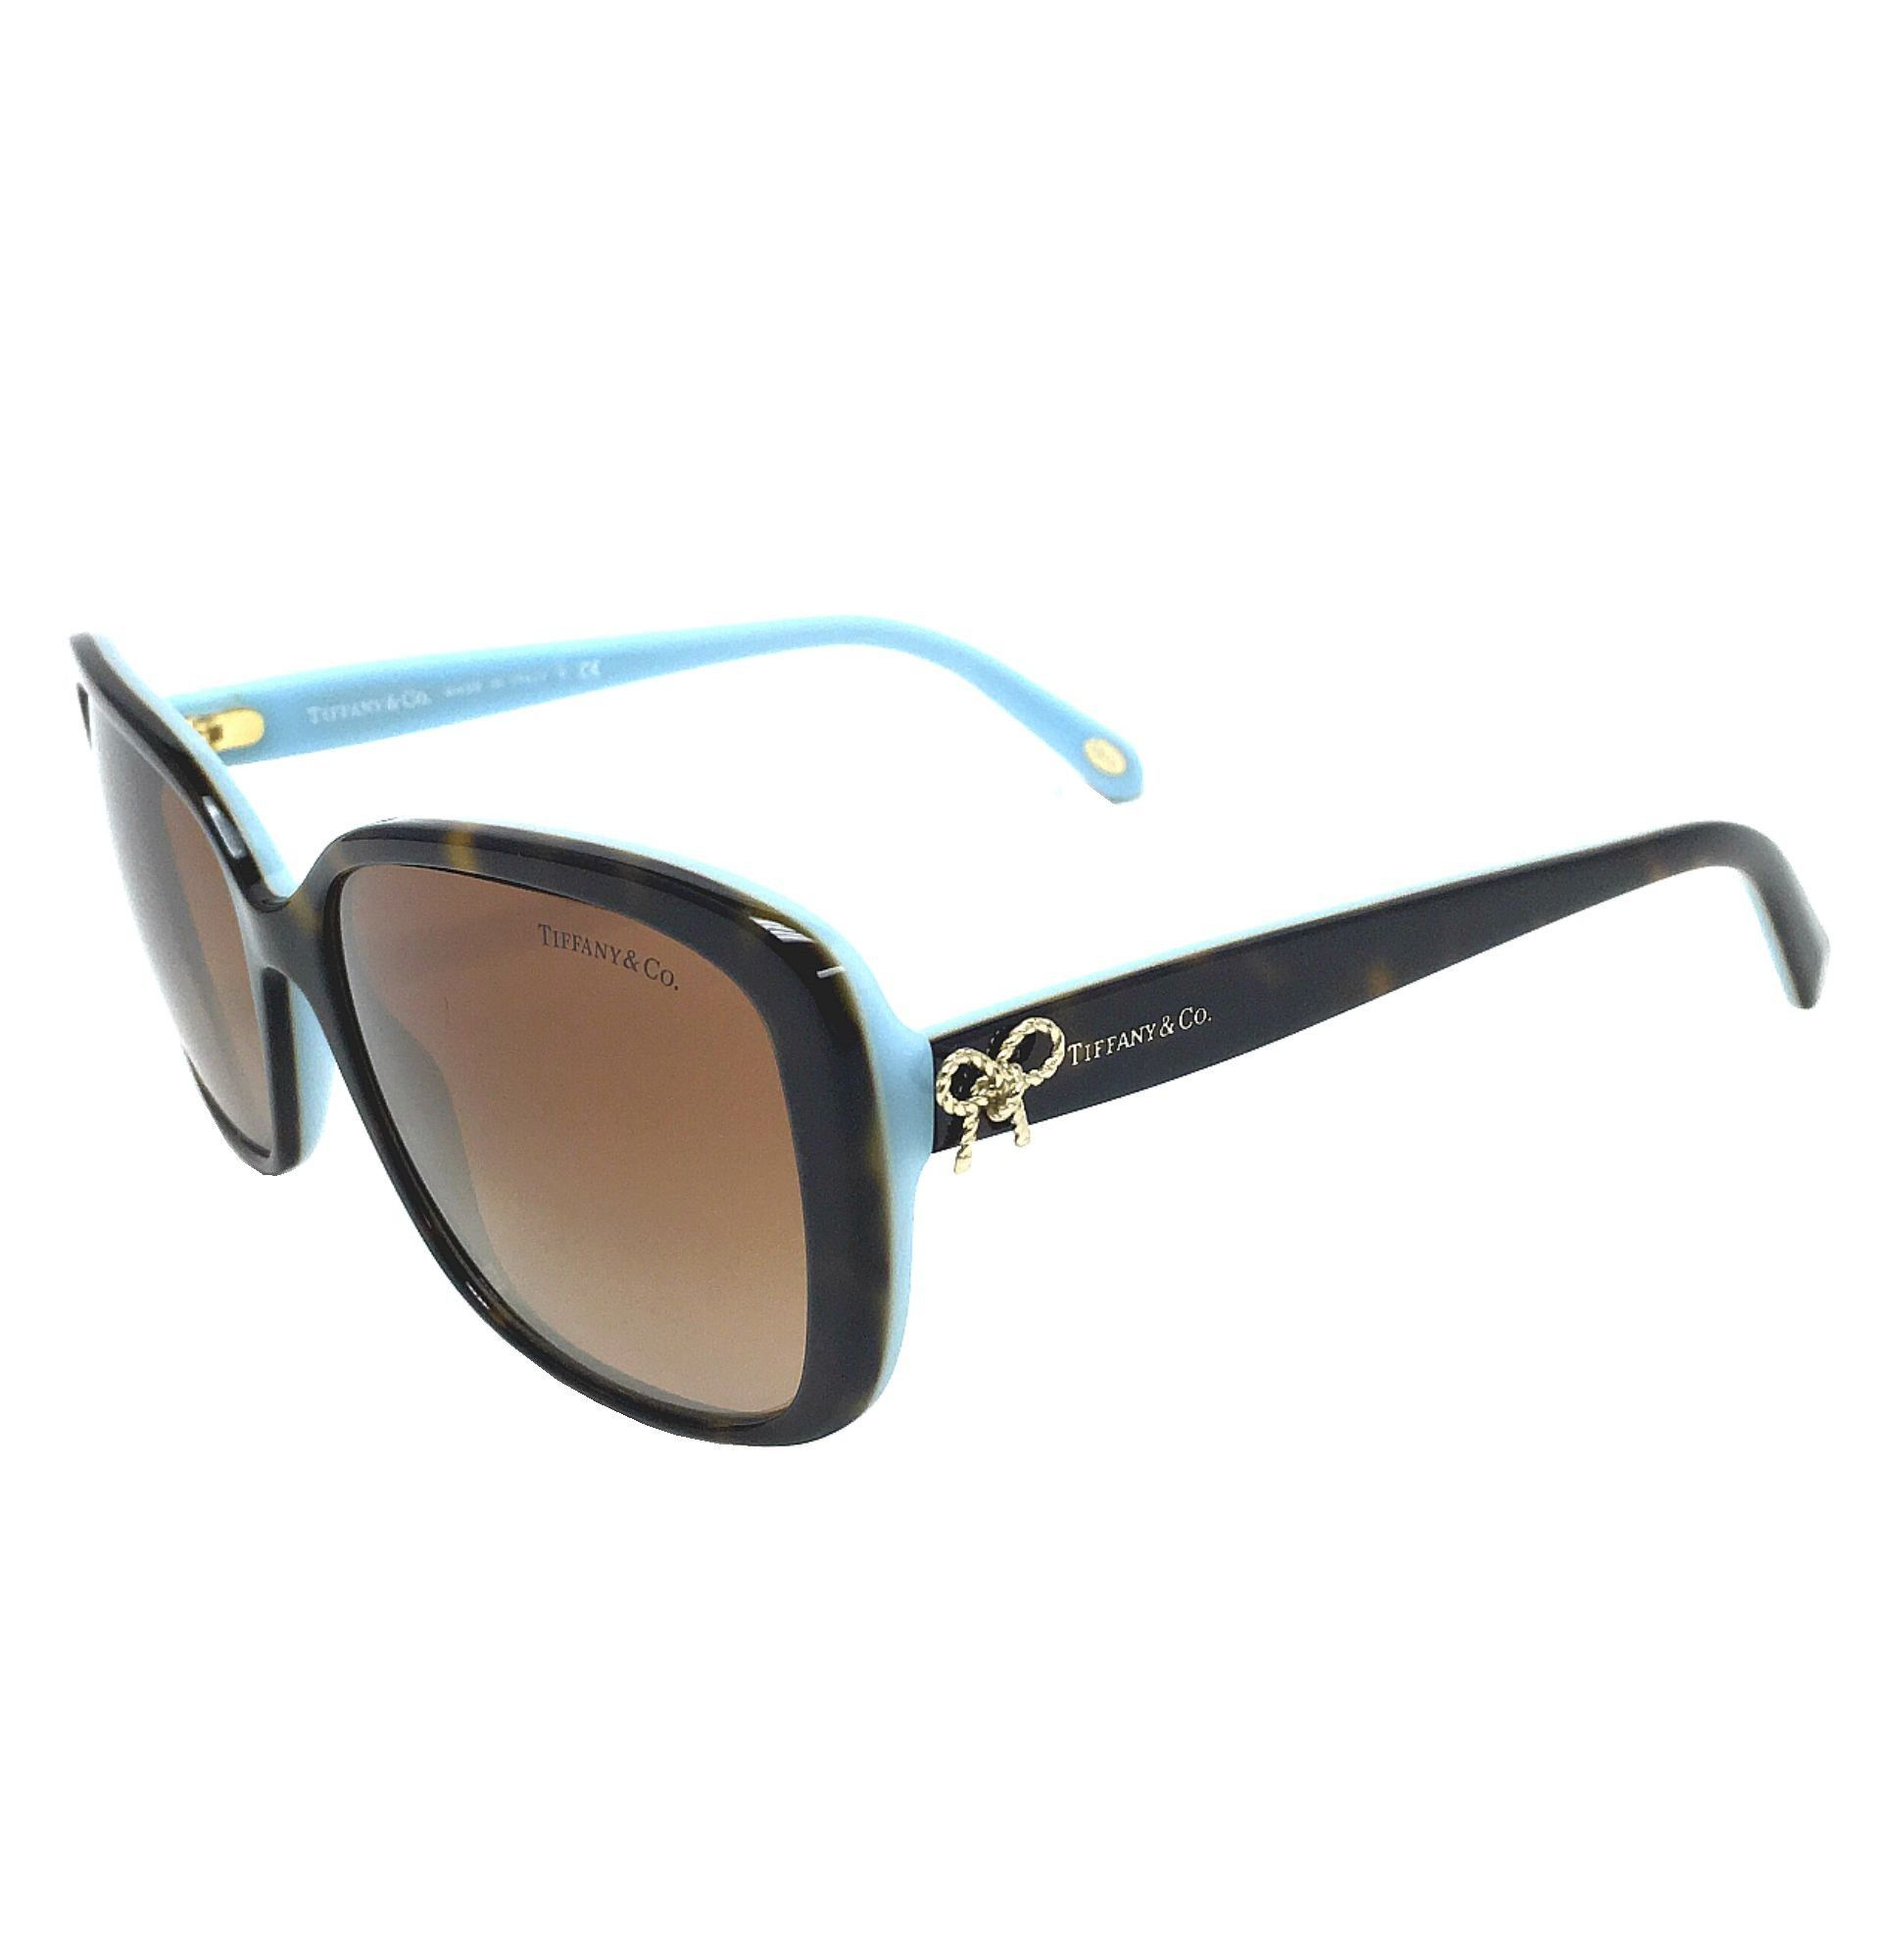 tiffany co tf4092 81343b havana blue brown gradient 56mm sunglasses - Tiffany And Co Color Code